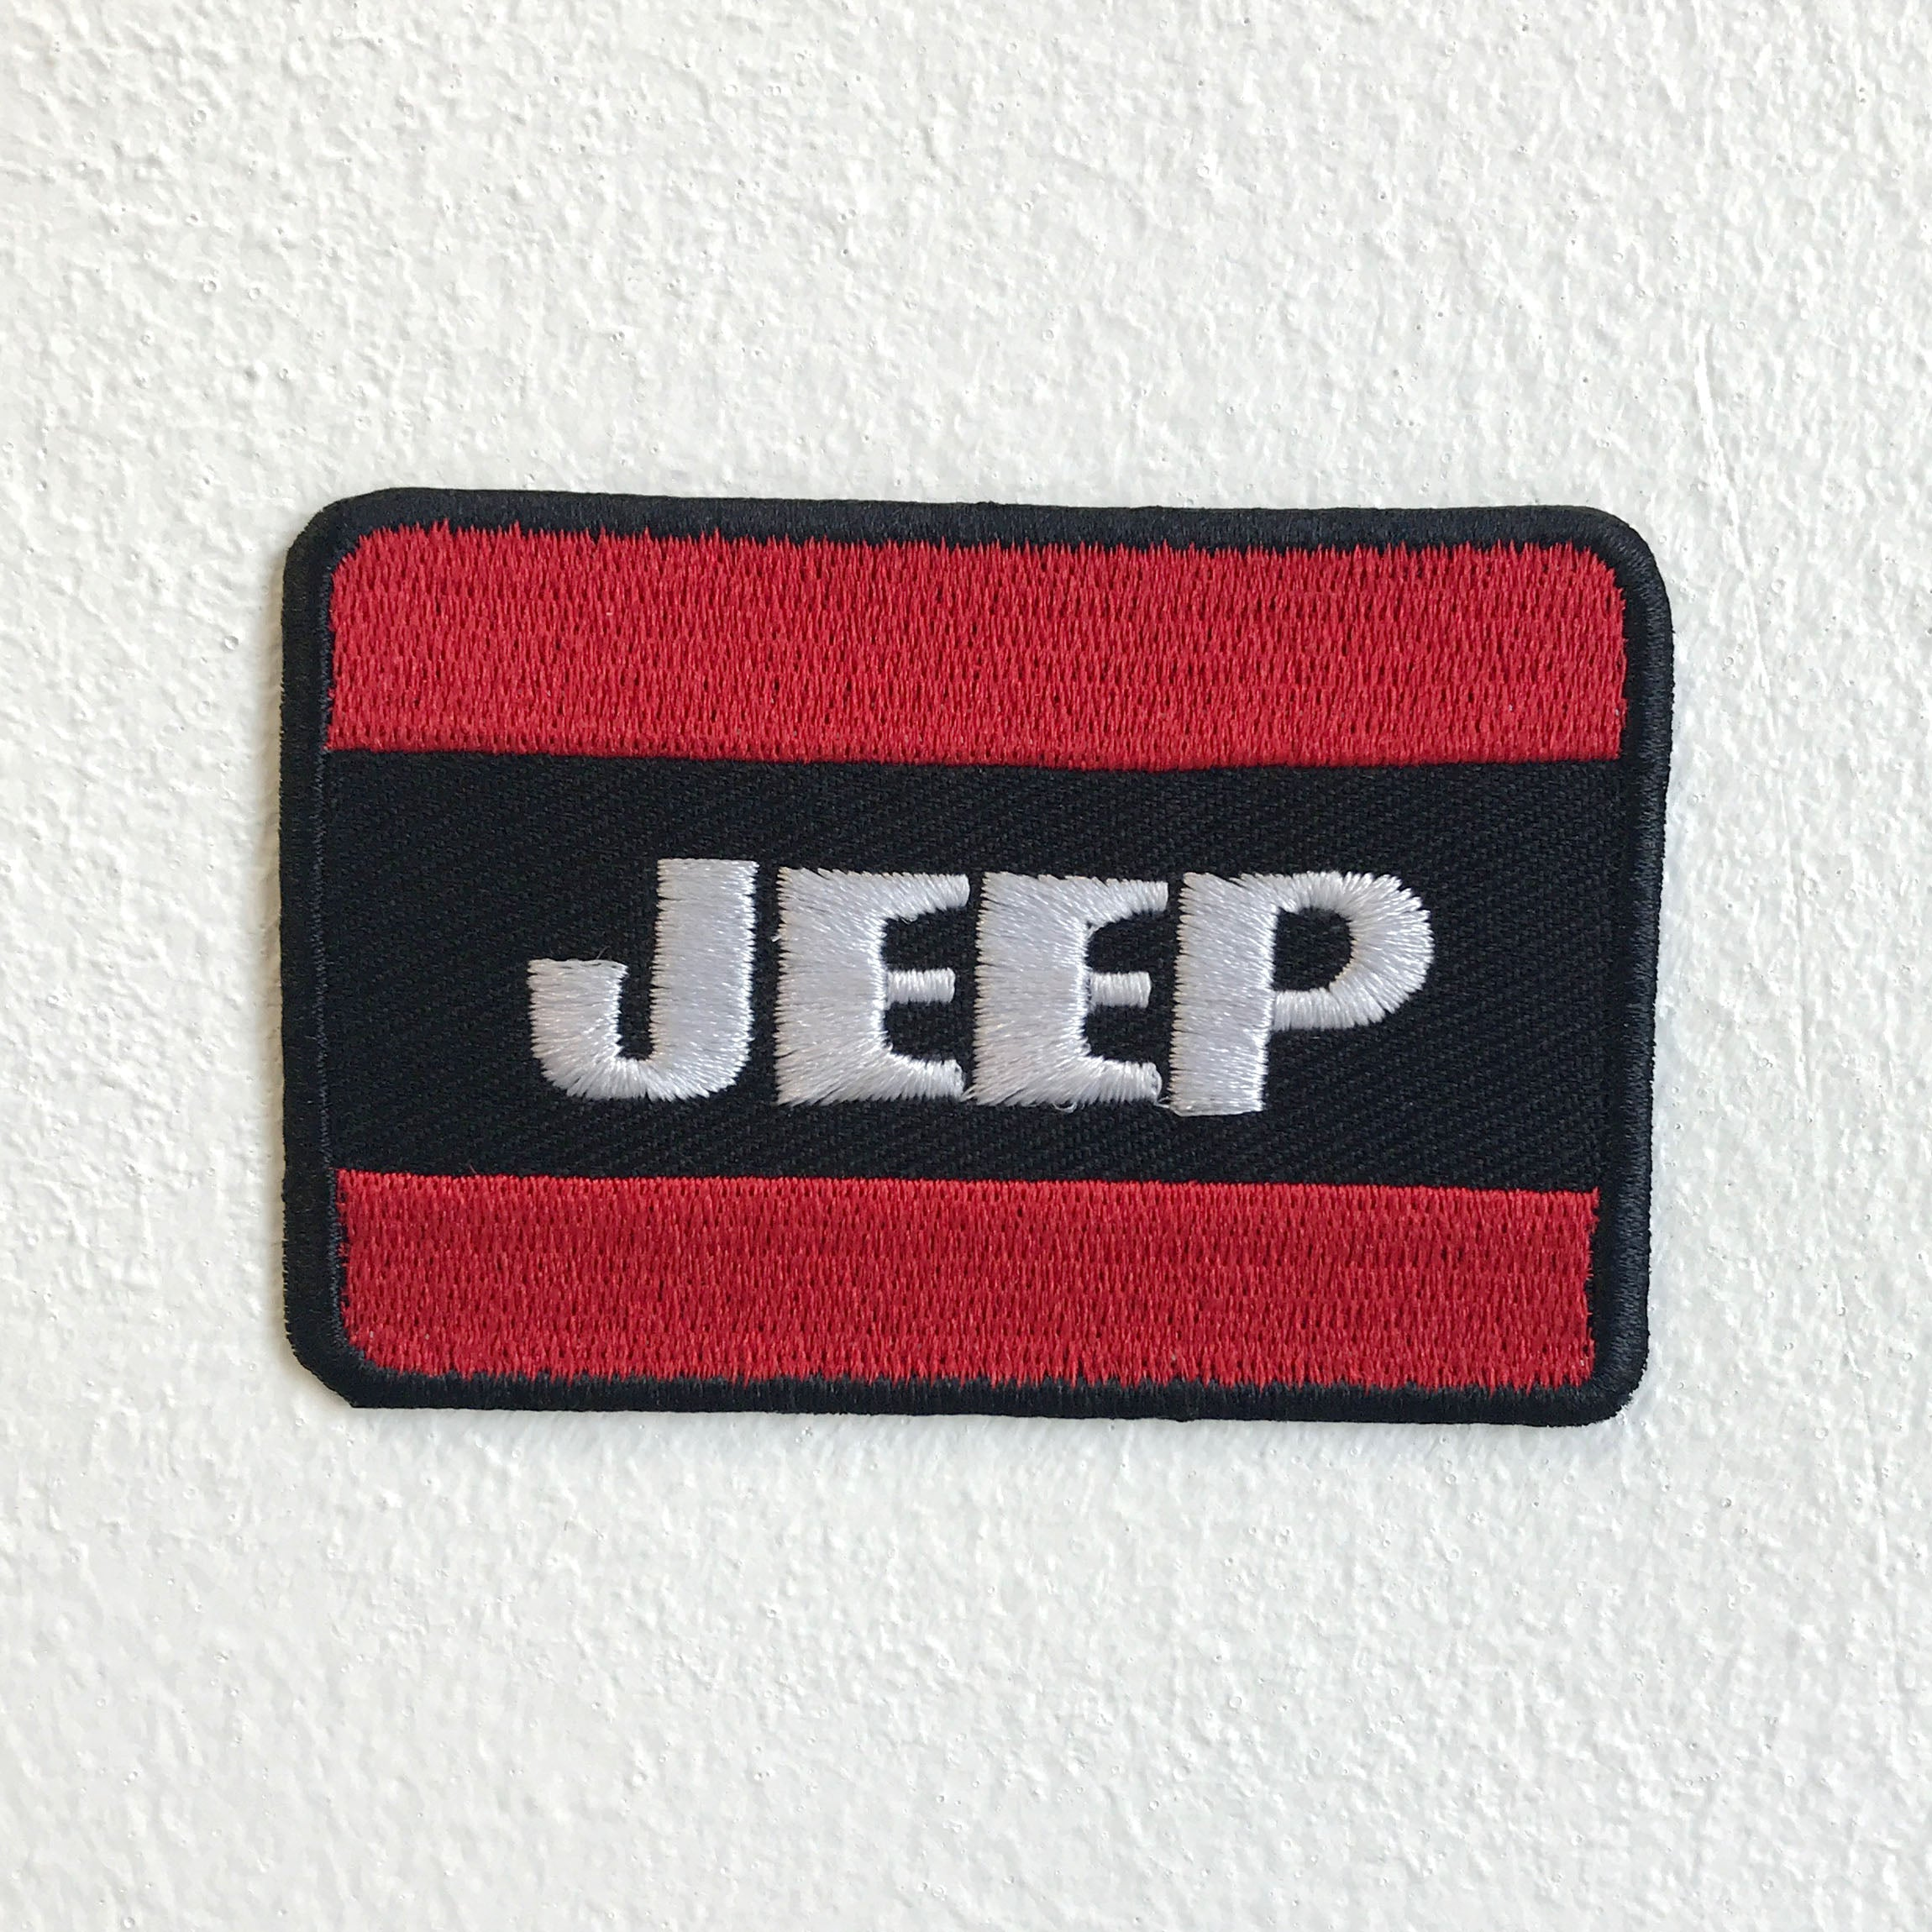 Jeep Automobile 4x4 Motorsports Biker badge Iron Sew on Embroidered Patch - Patches-Badges